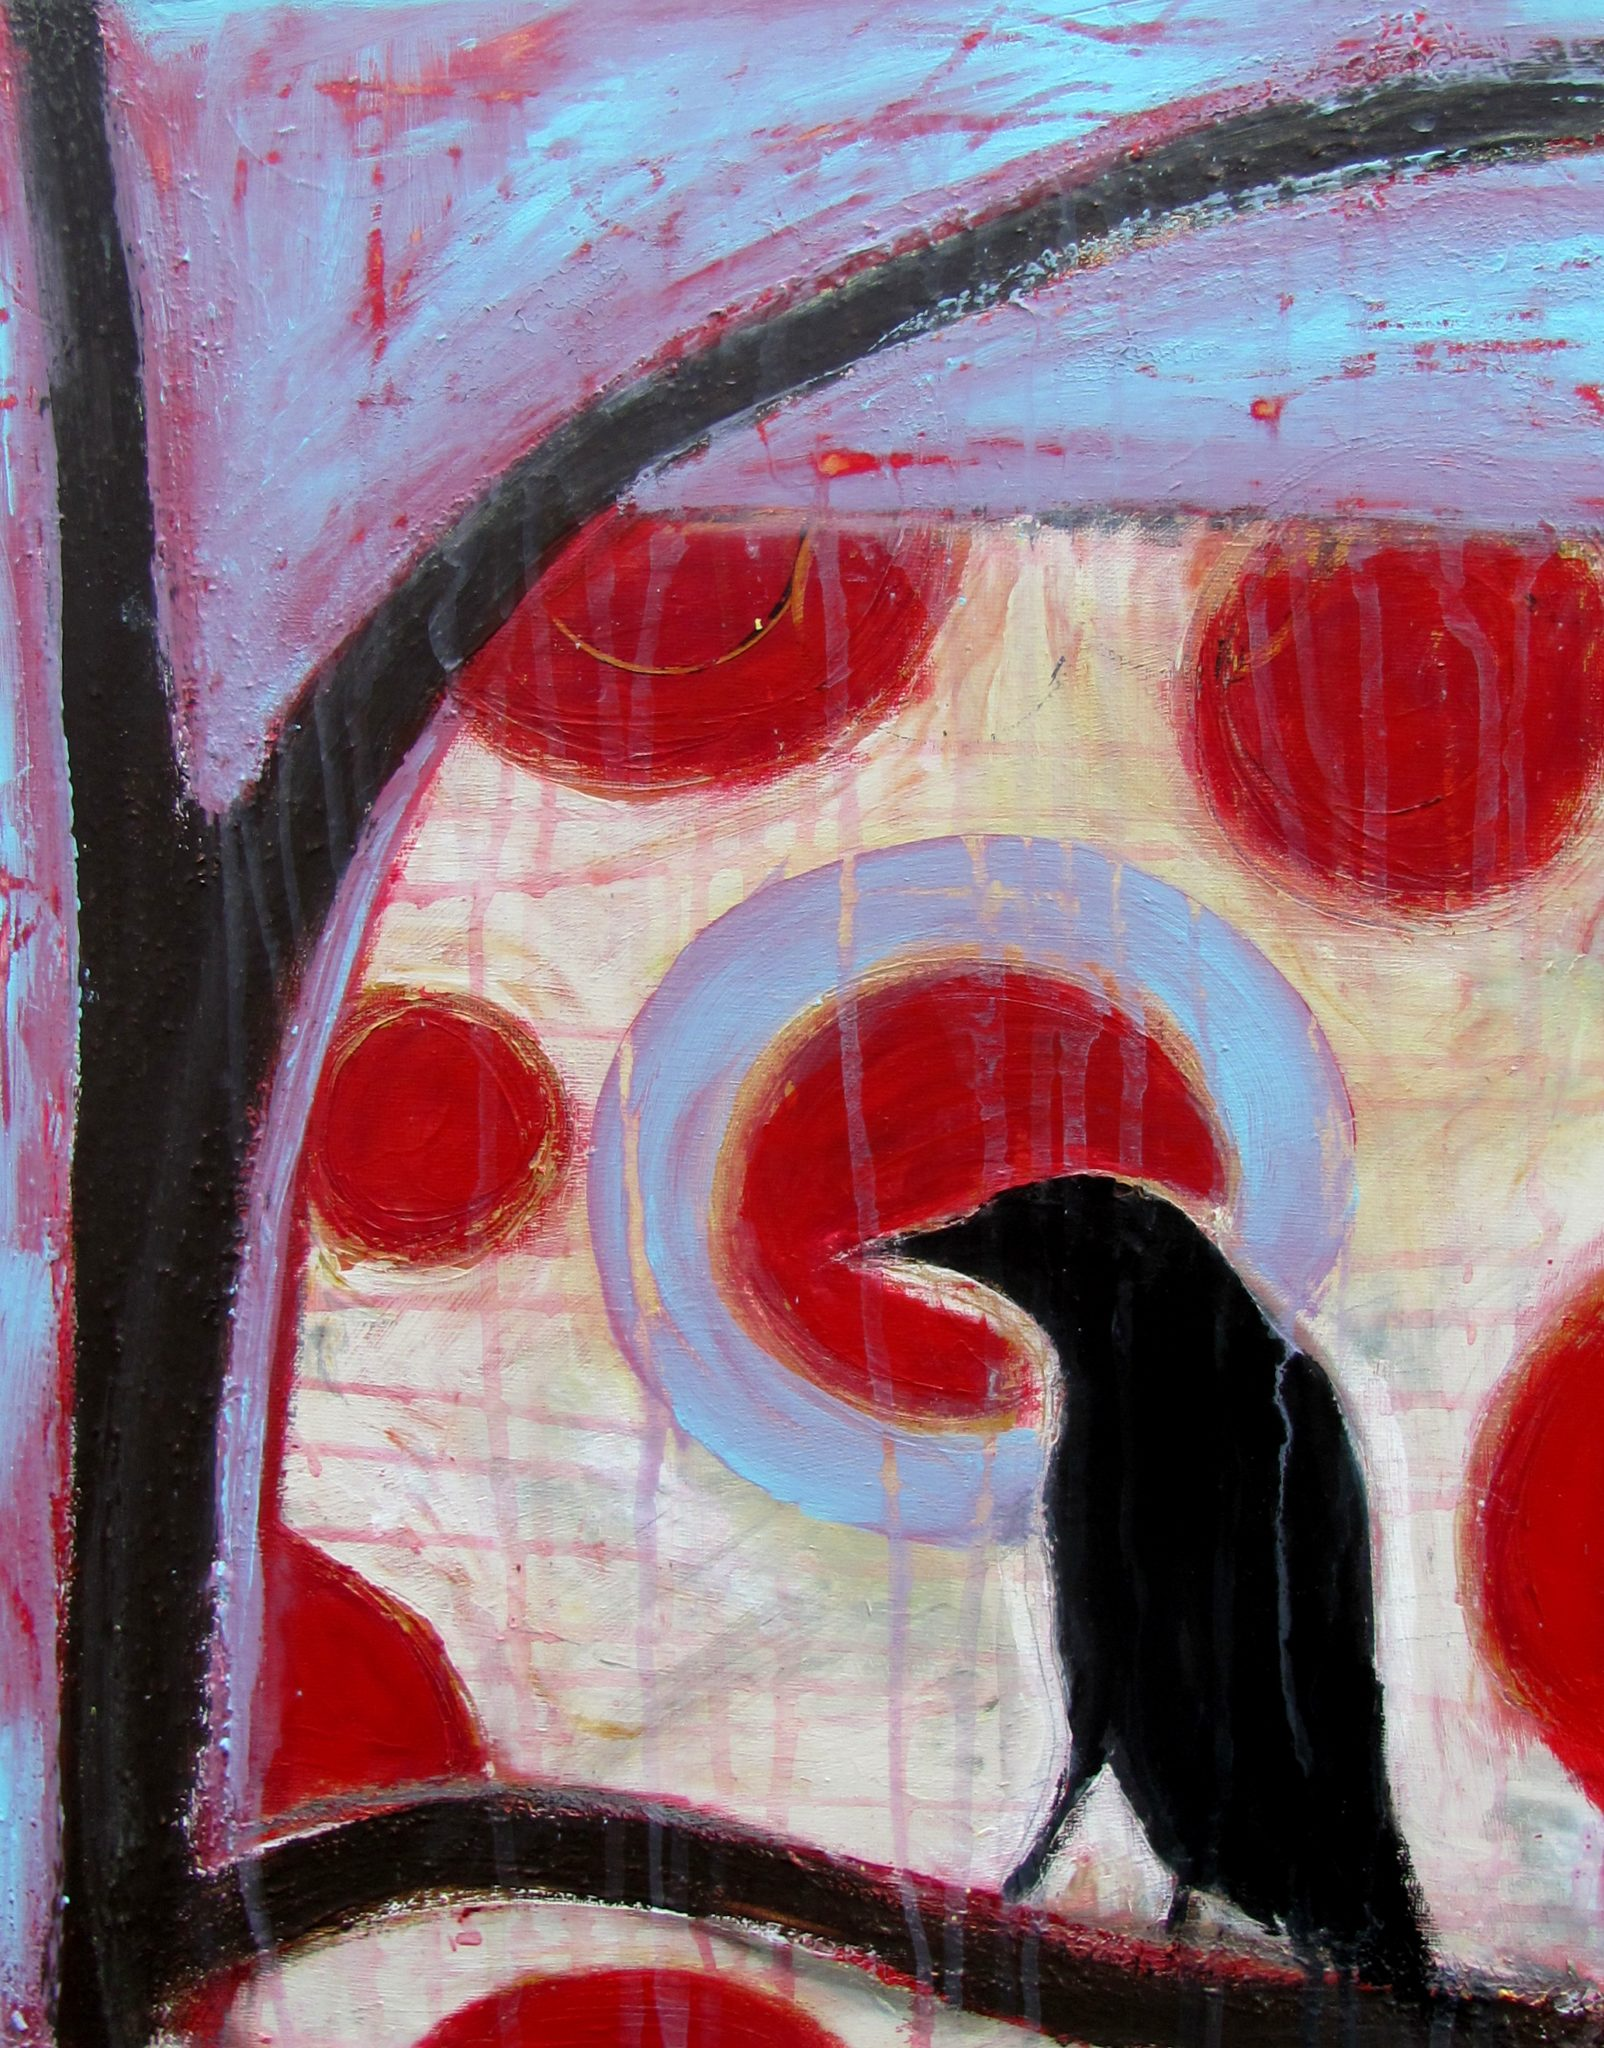 Contemplative Crow, acrylic painting by Courtney Putnam